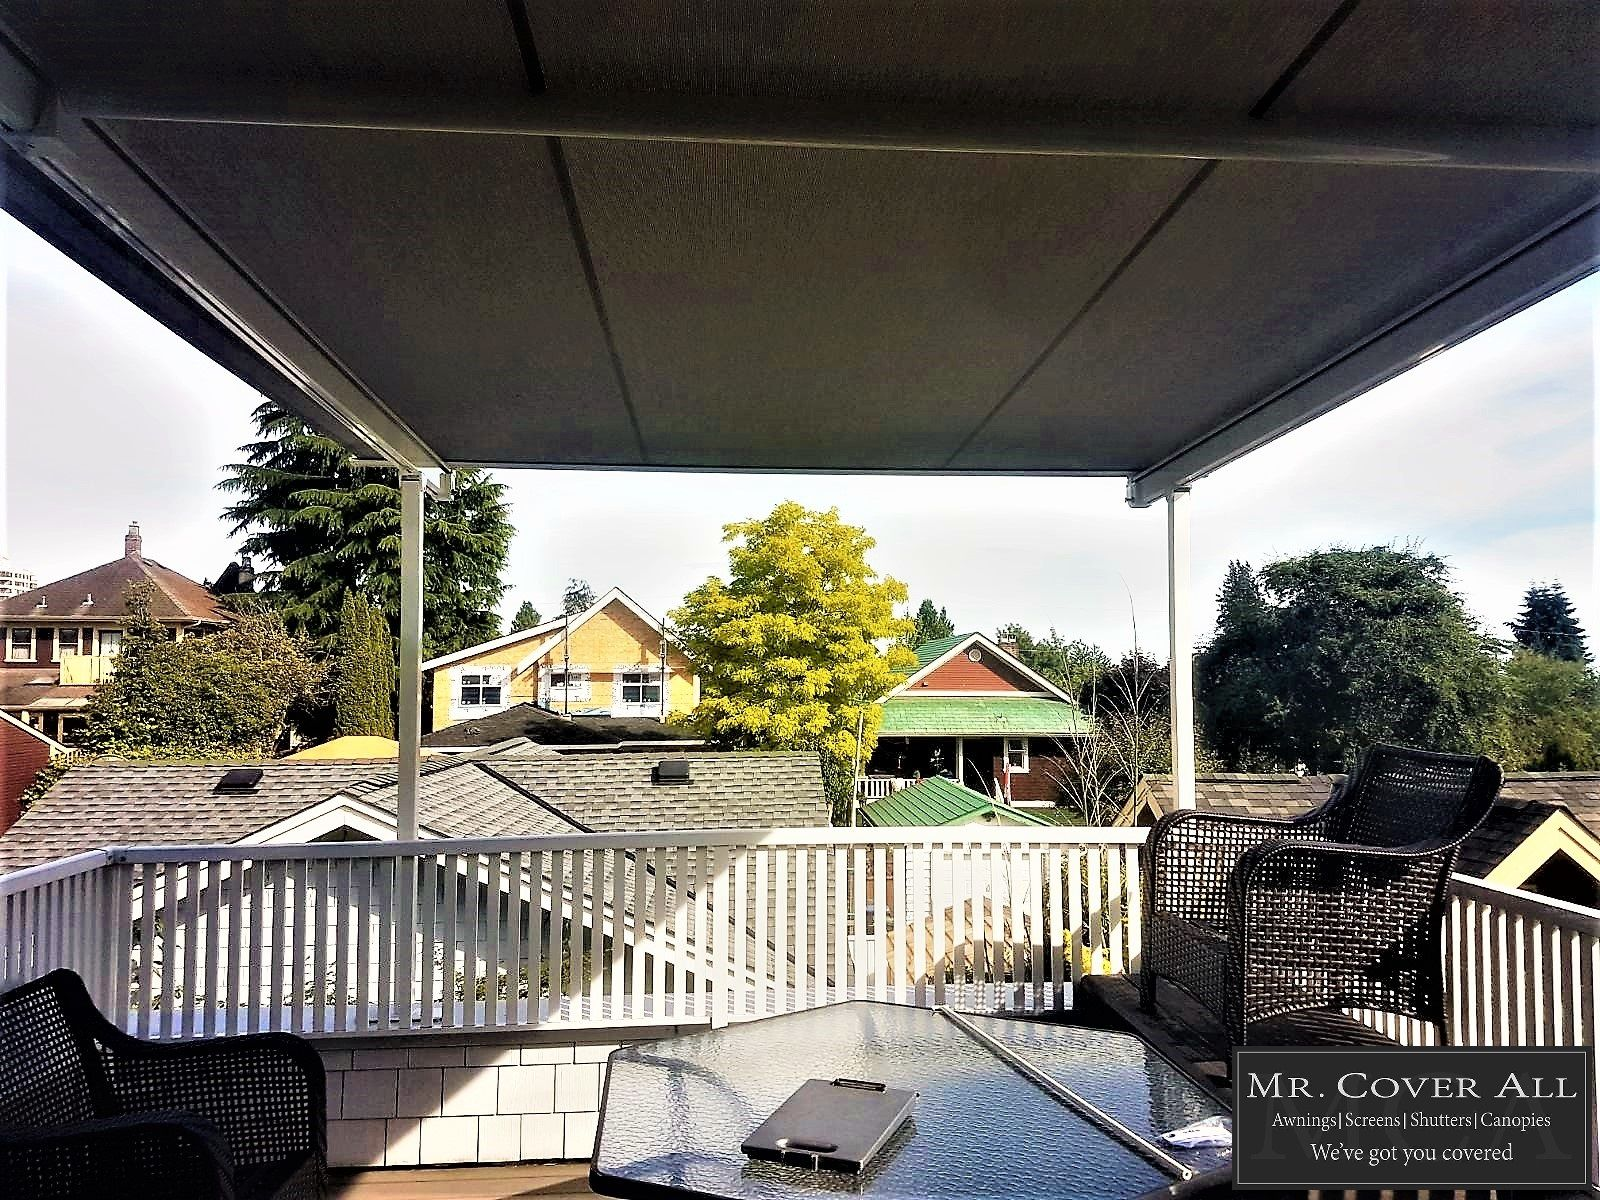 Pergolino Retractable Awning Roof Systems The Stobag Pergolino Systems Are Retractable Shading Structures Perfec Retractable Awning Awning Roof Roofing Systems